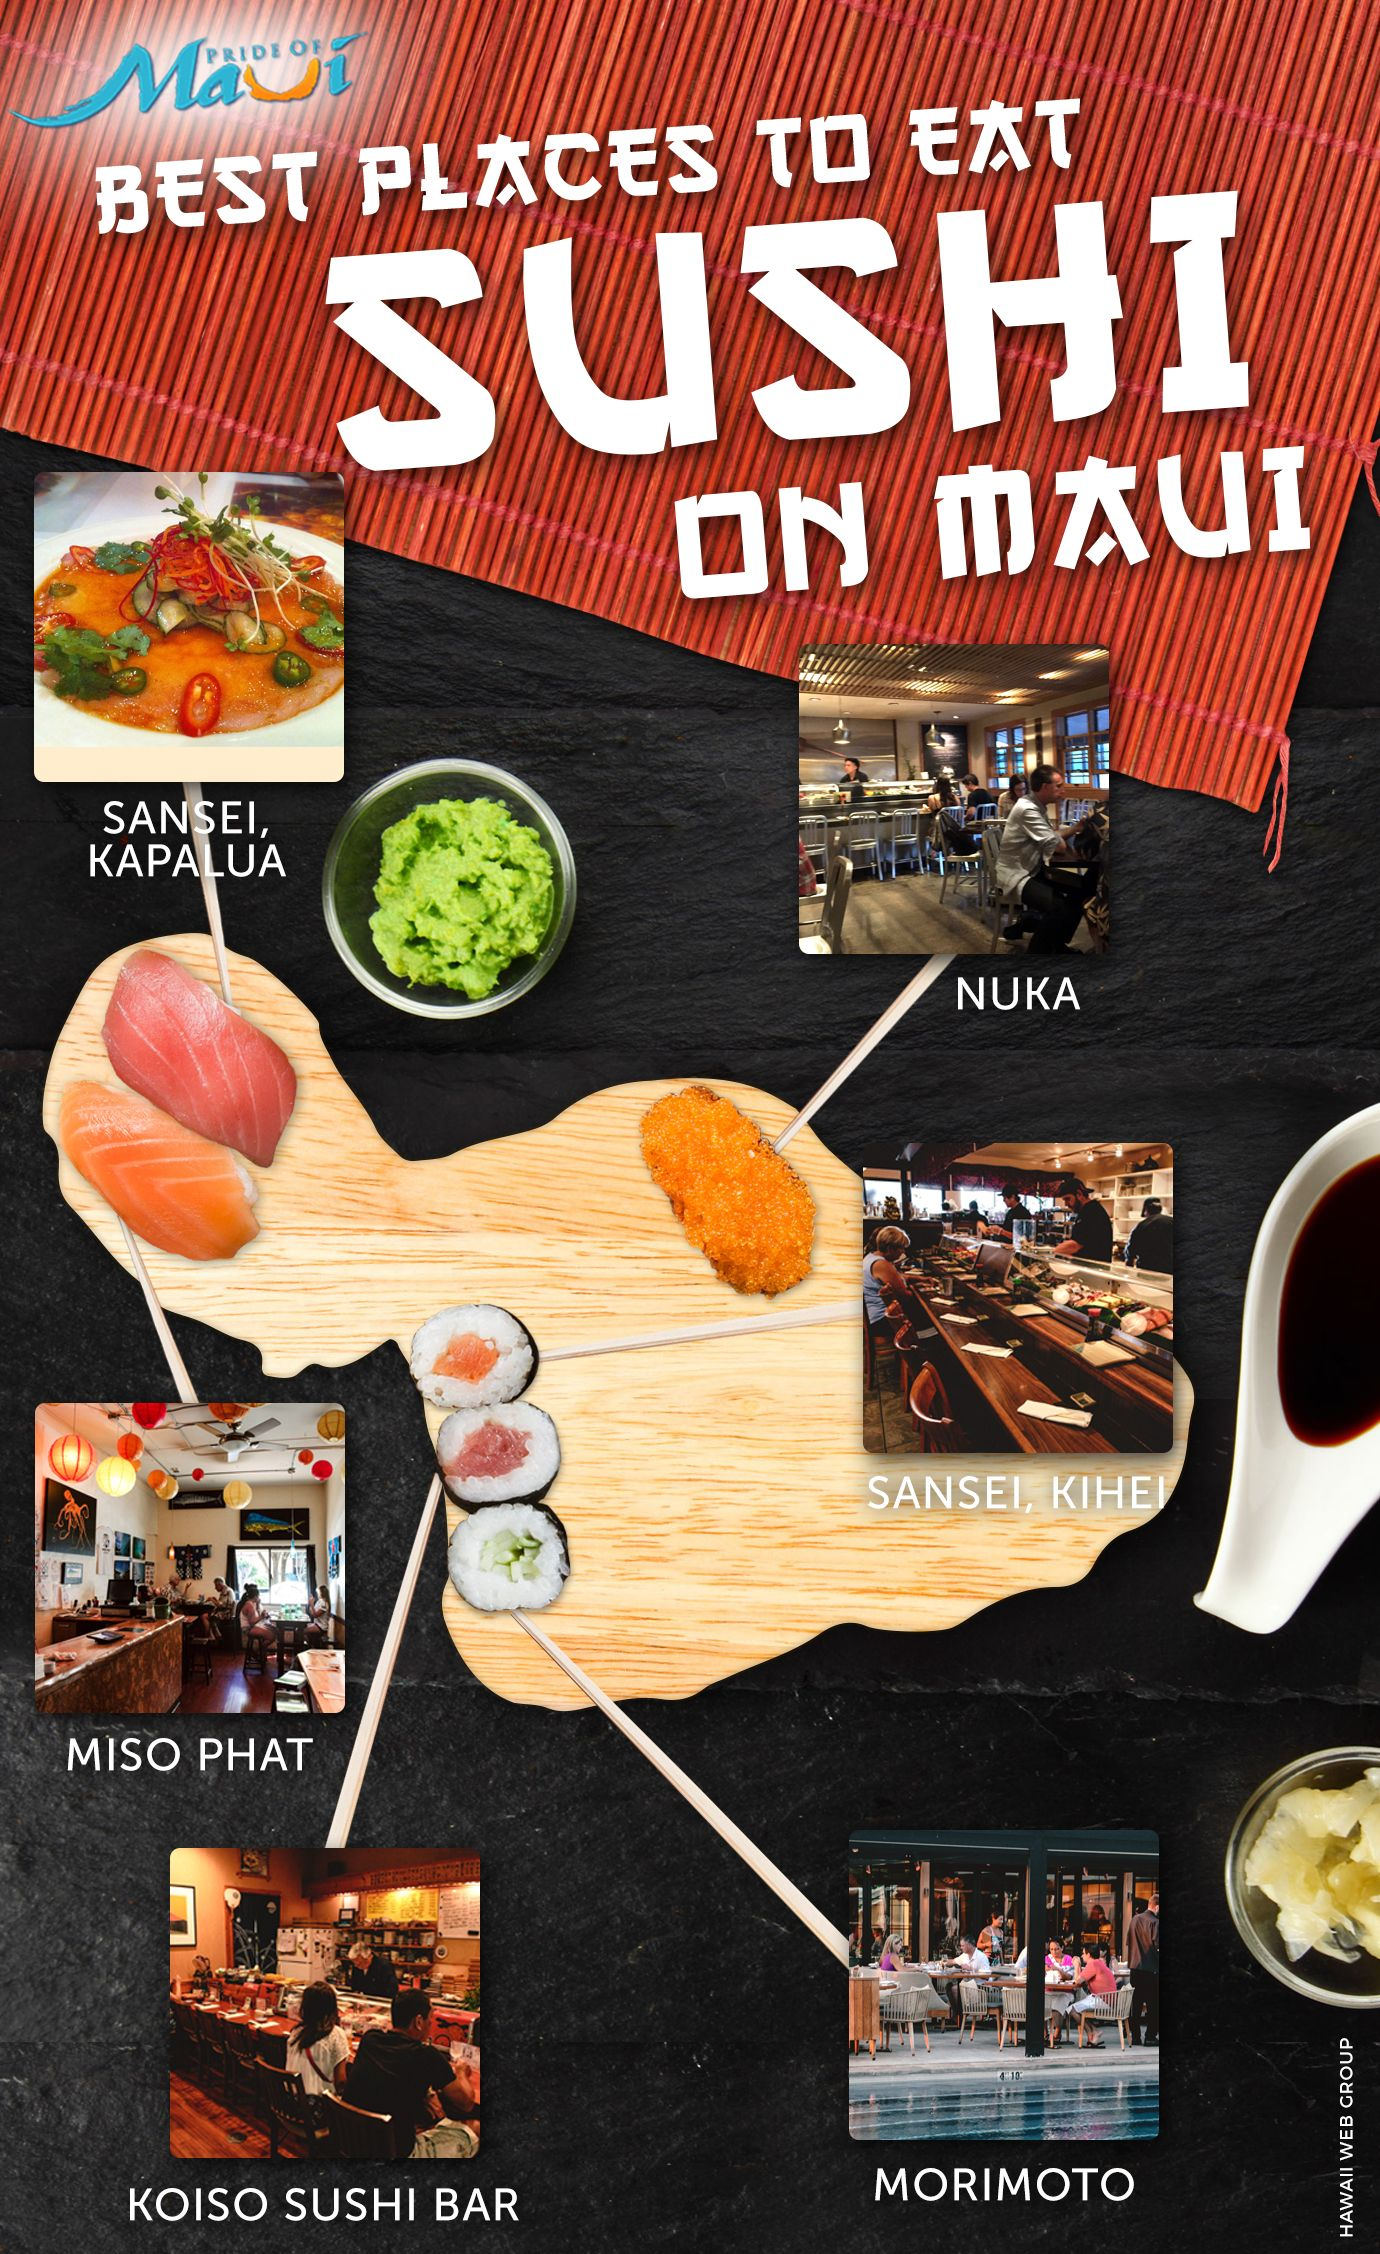 Best Sushi Restaurants On Maui I Know Most Of You Don T Like But Ve Gotta Try Some Since It S Supposed To Be Really Authentic